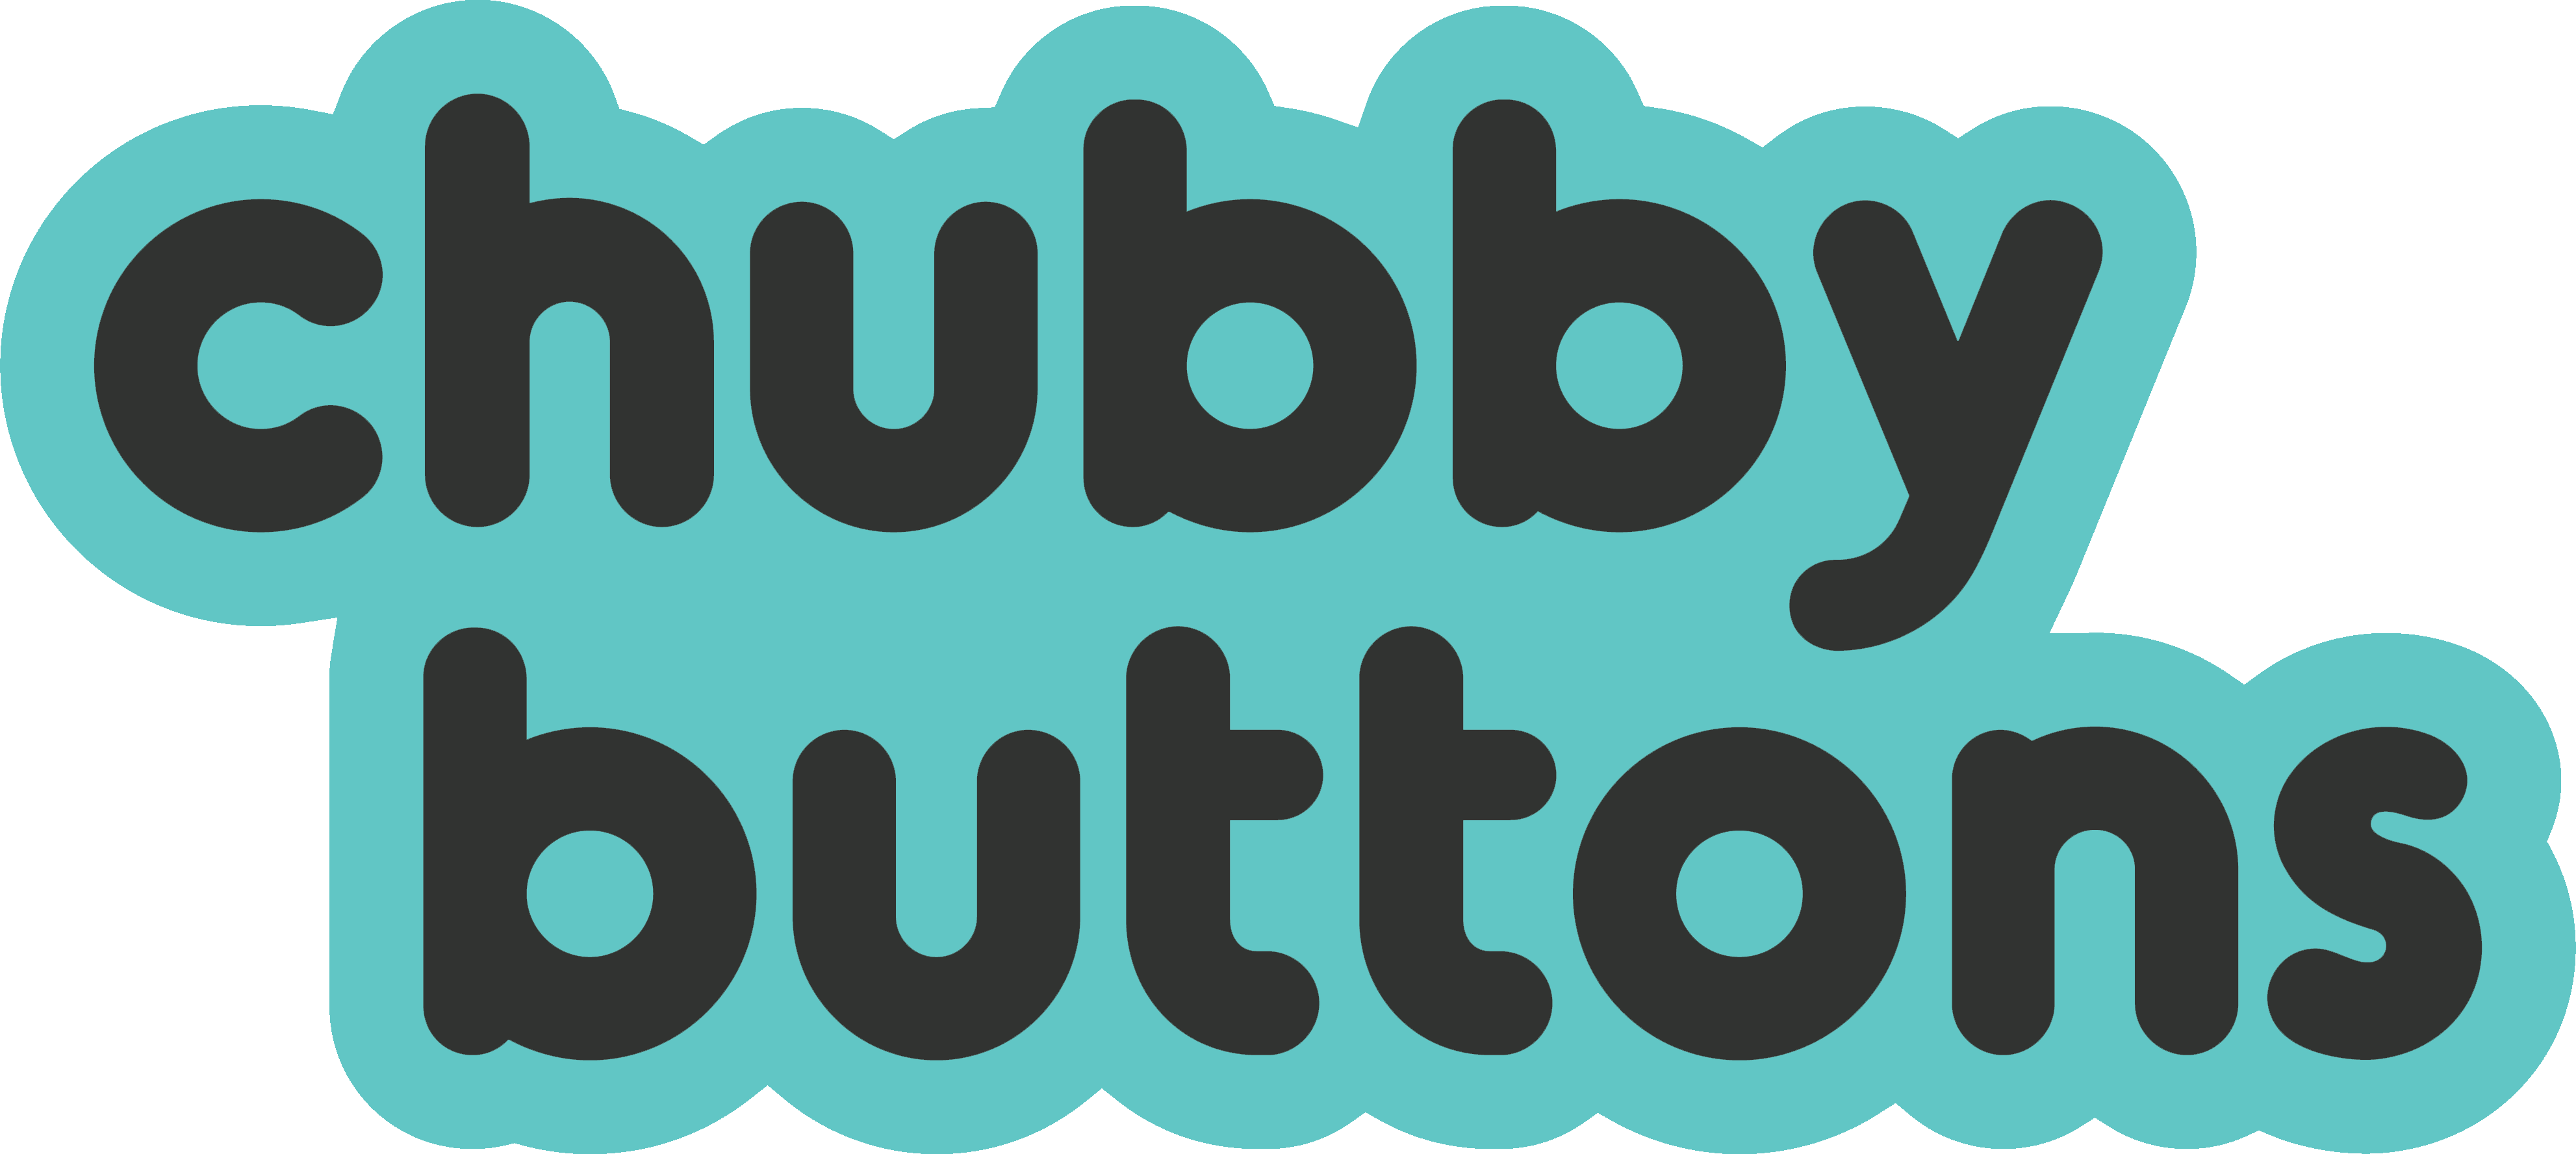 Chubby Buttons Help Center home page